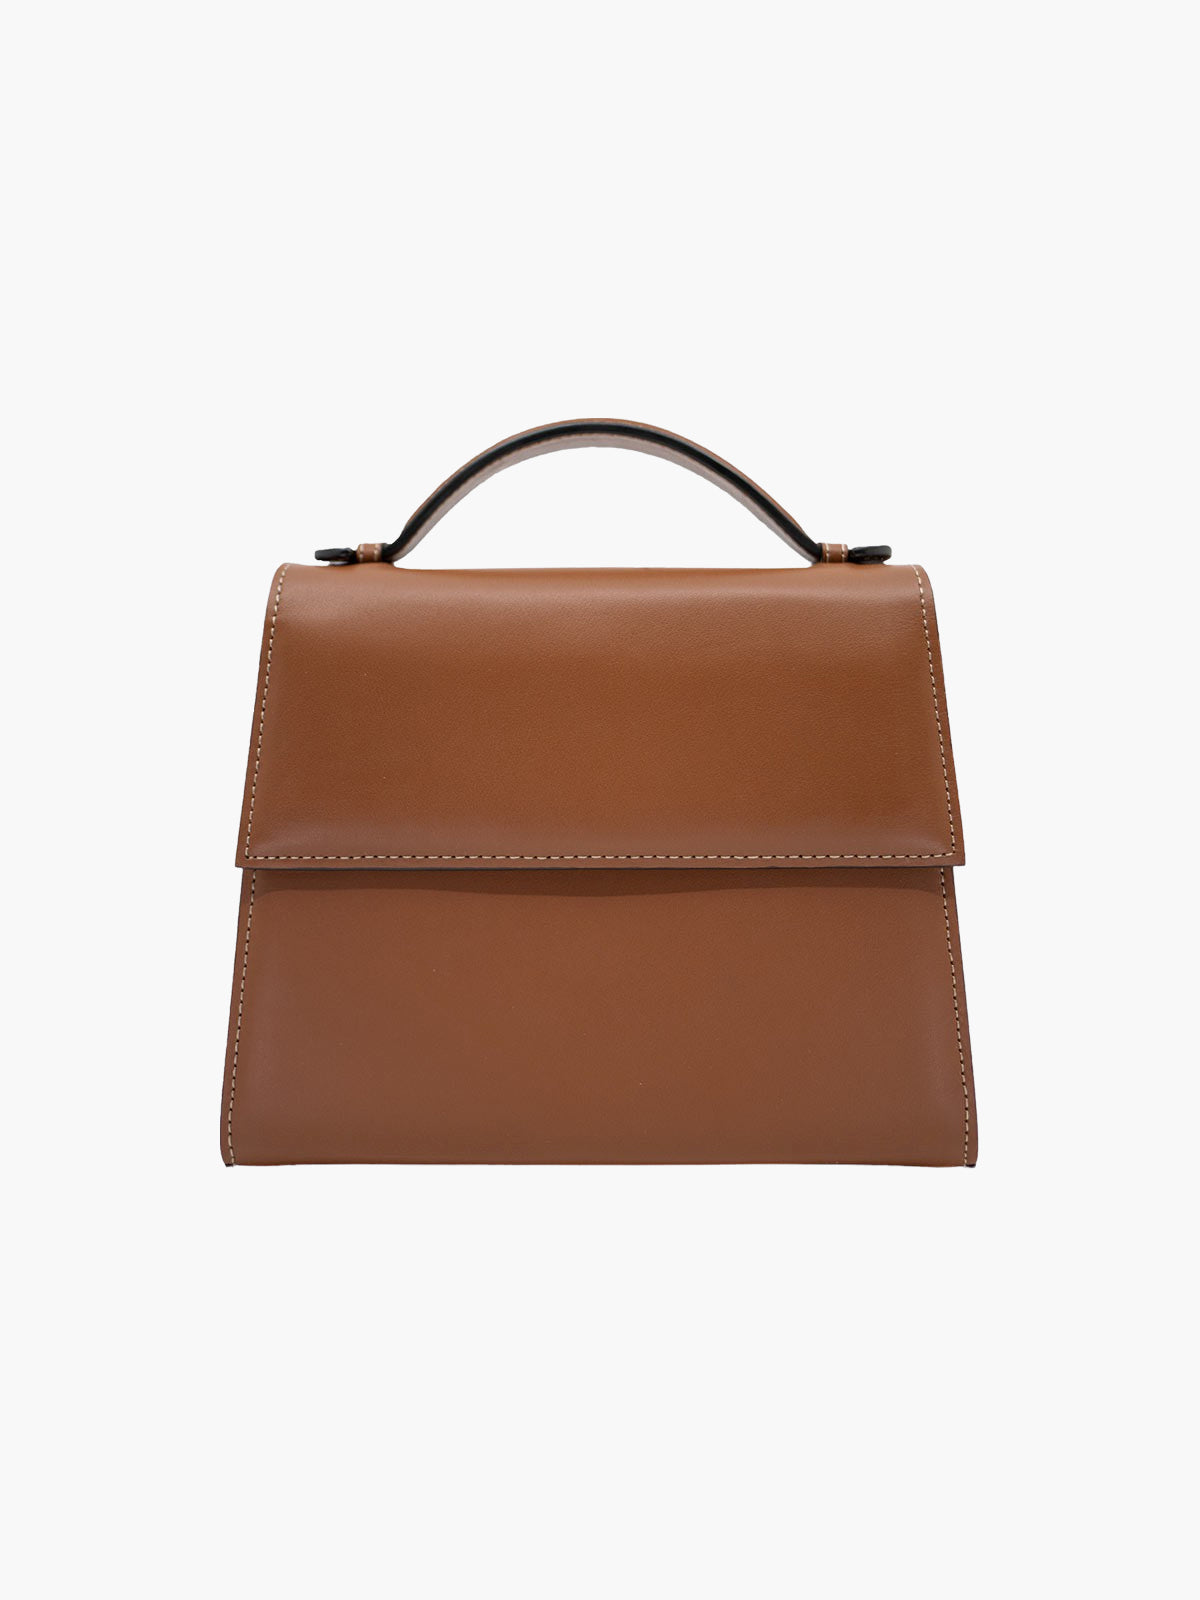 Medium Top Handle Bag | Cognac